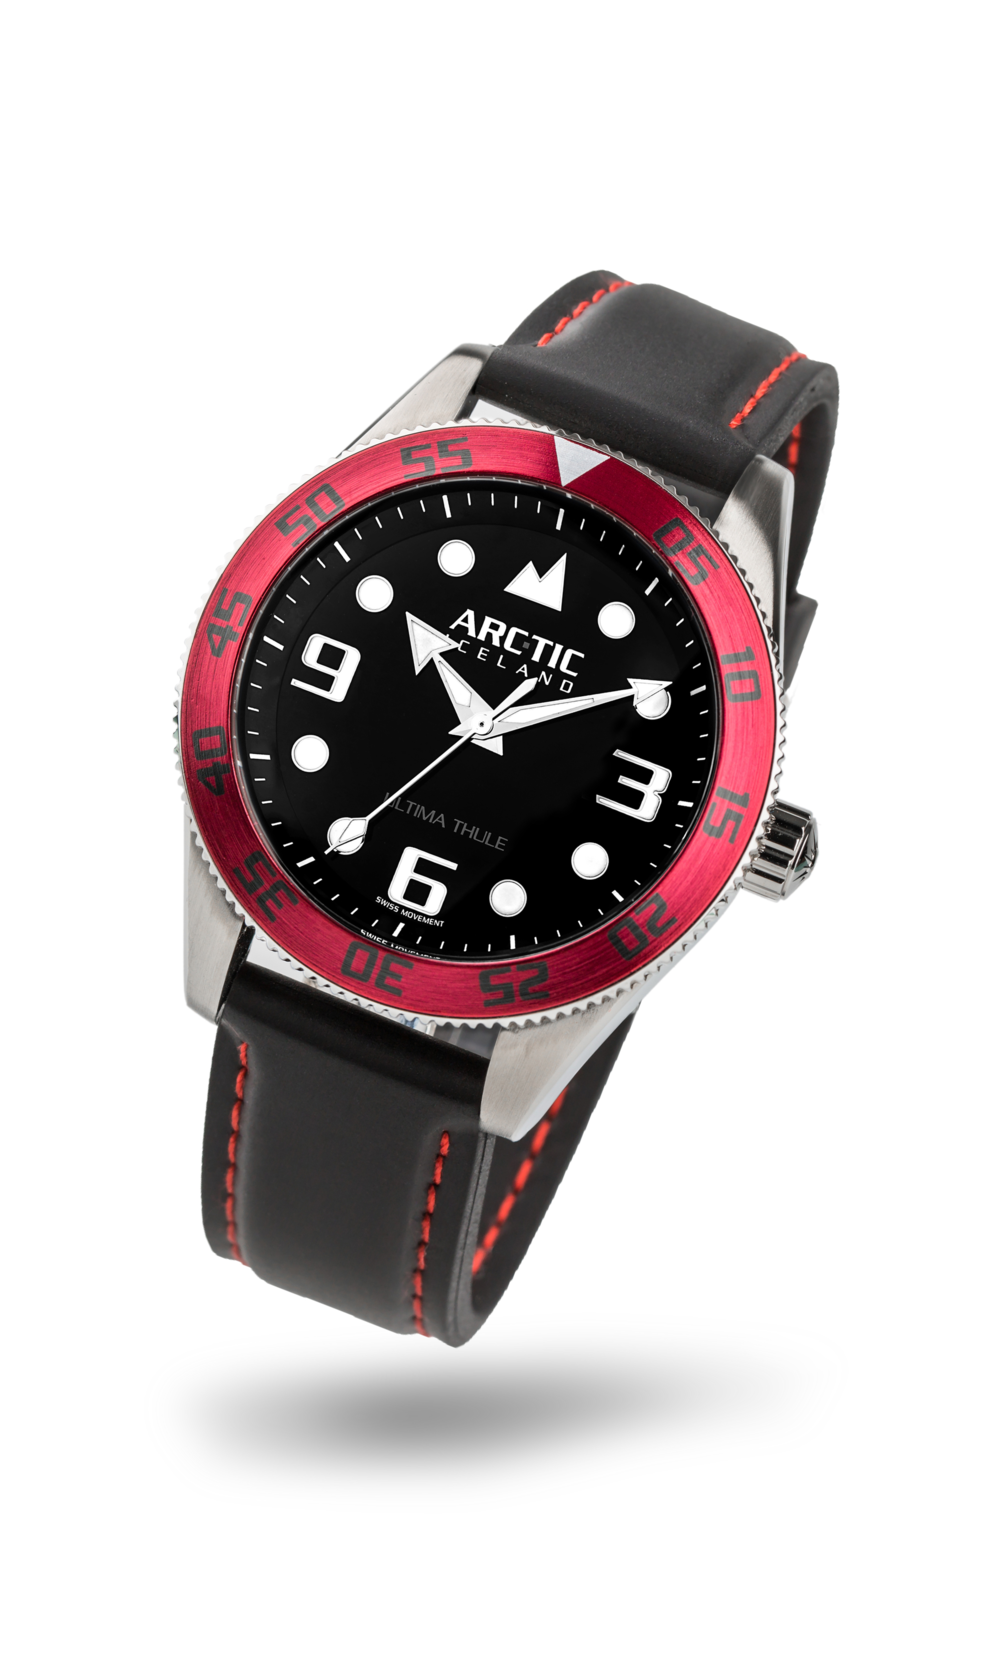 ARC-TIC Iceland UT Red with rubber strap  Learn More